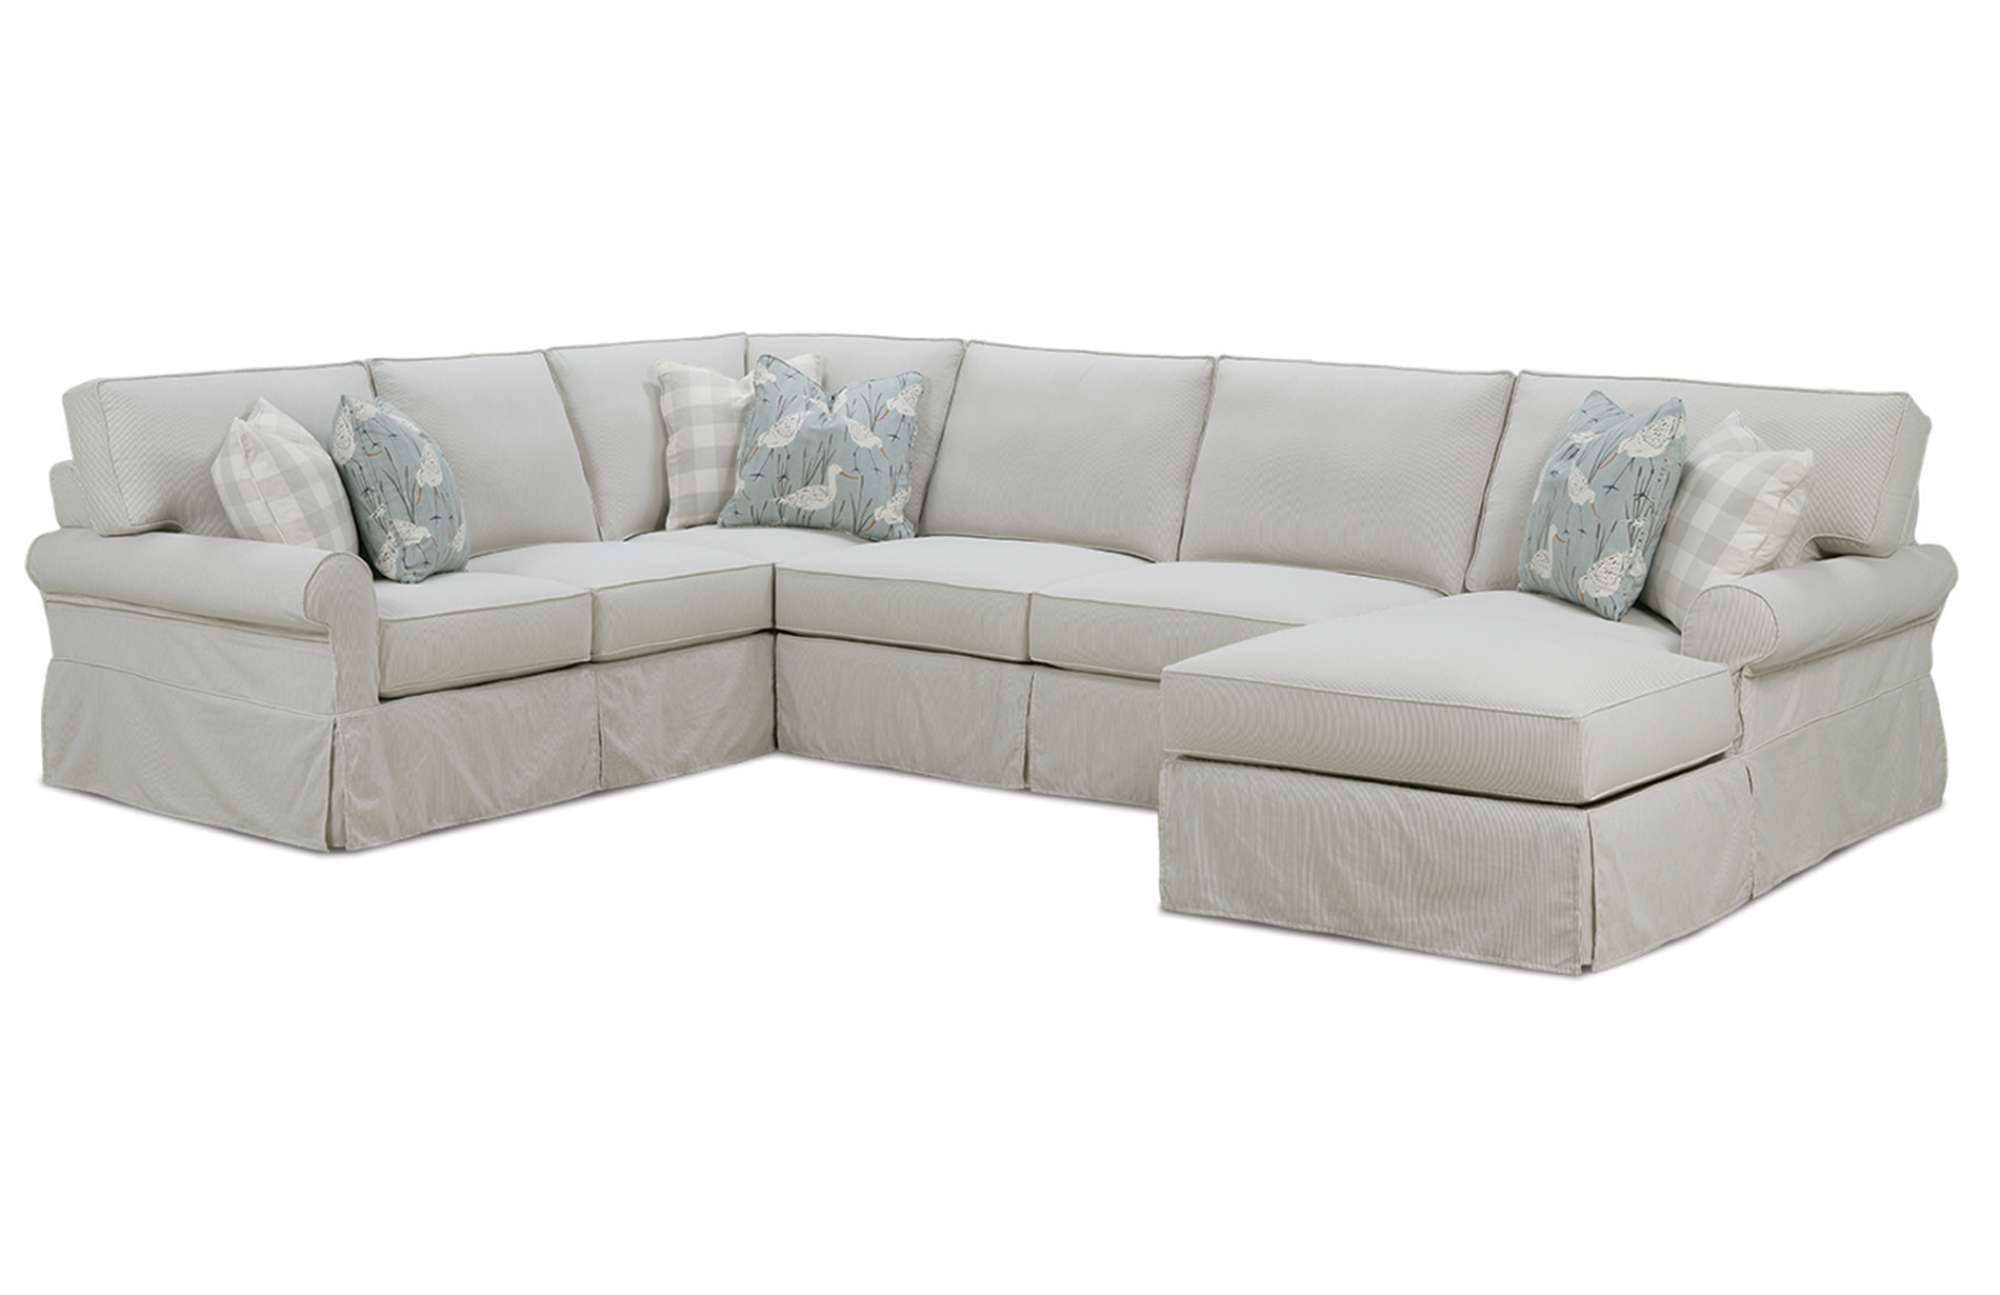 Dobson Sectional Sofa In Cream | Goodca Sofa with Dobson Sectional Sofa (Image 6 of 30)